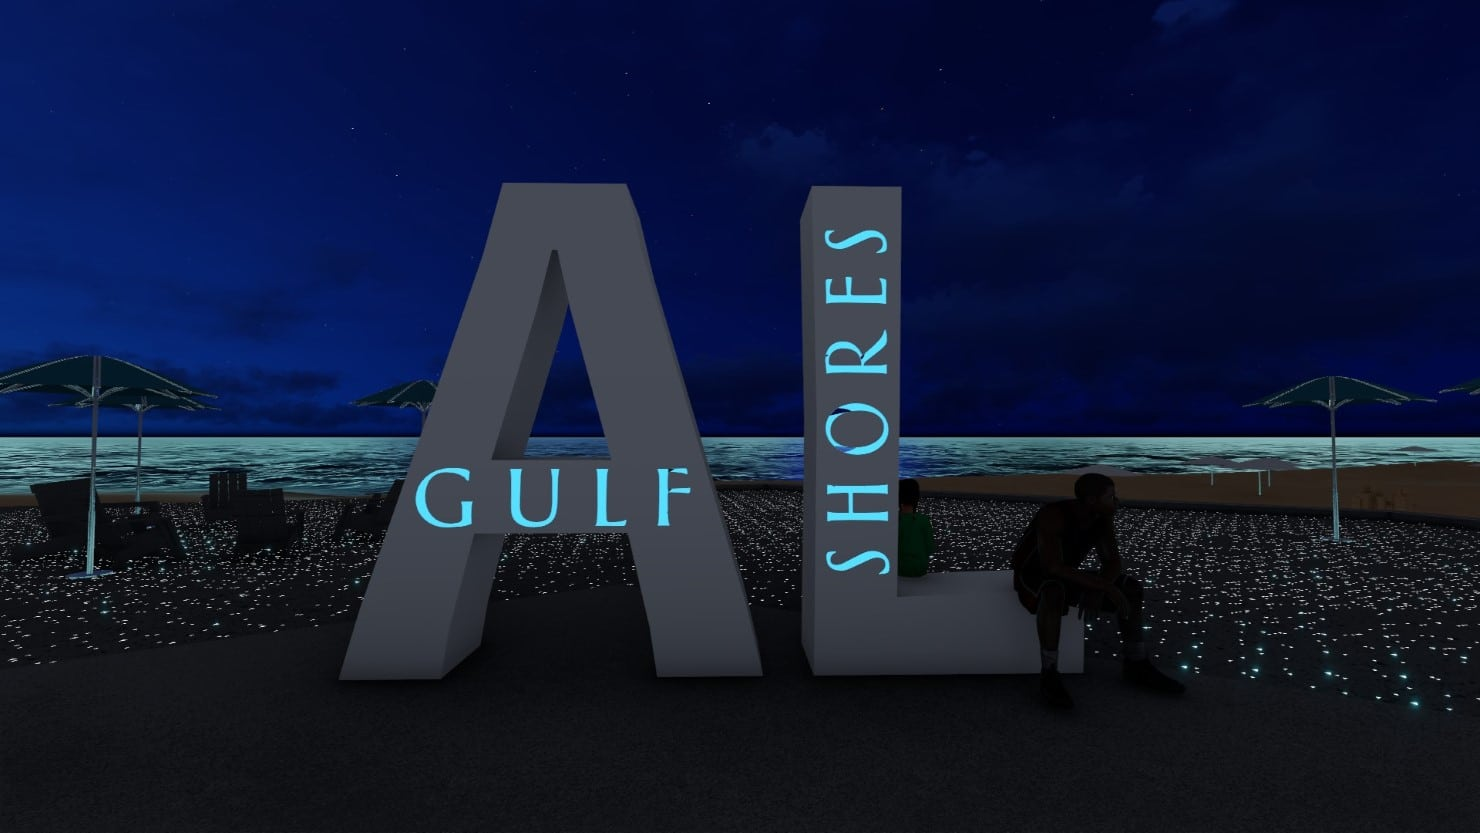 Place Based Branding Gulf Place Signage